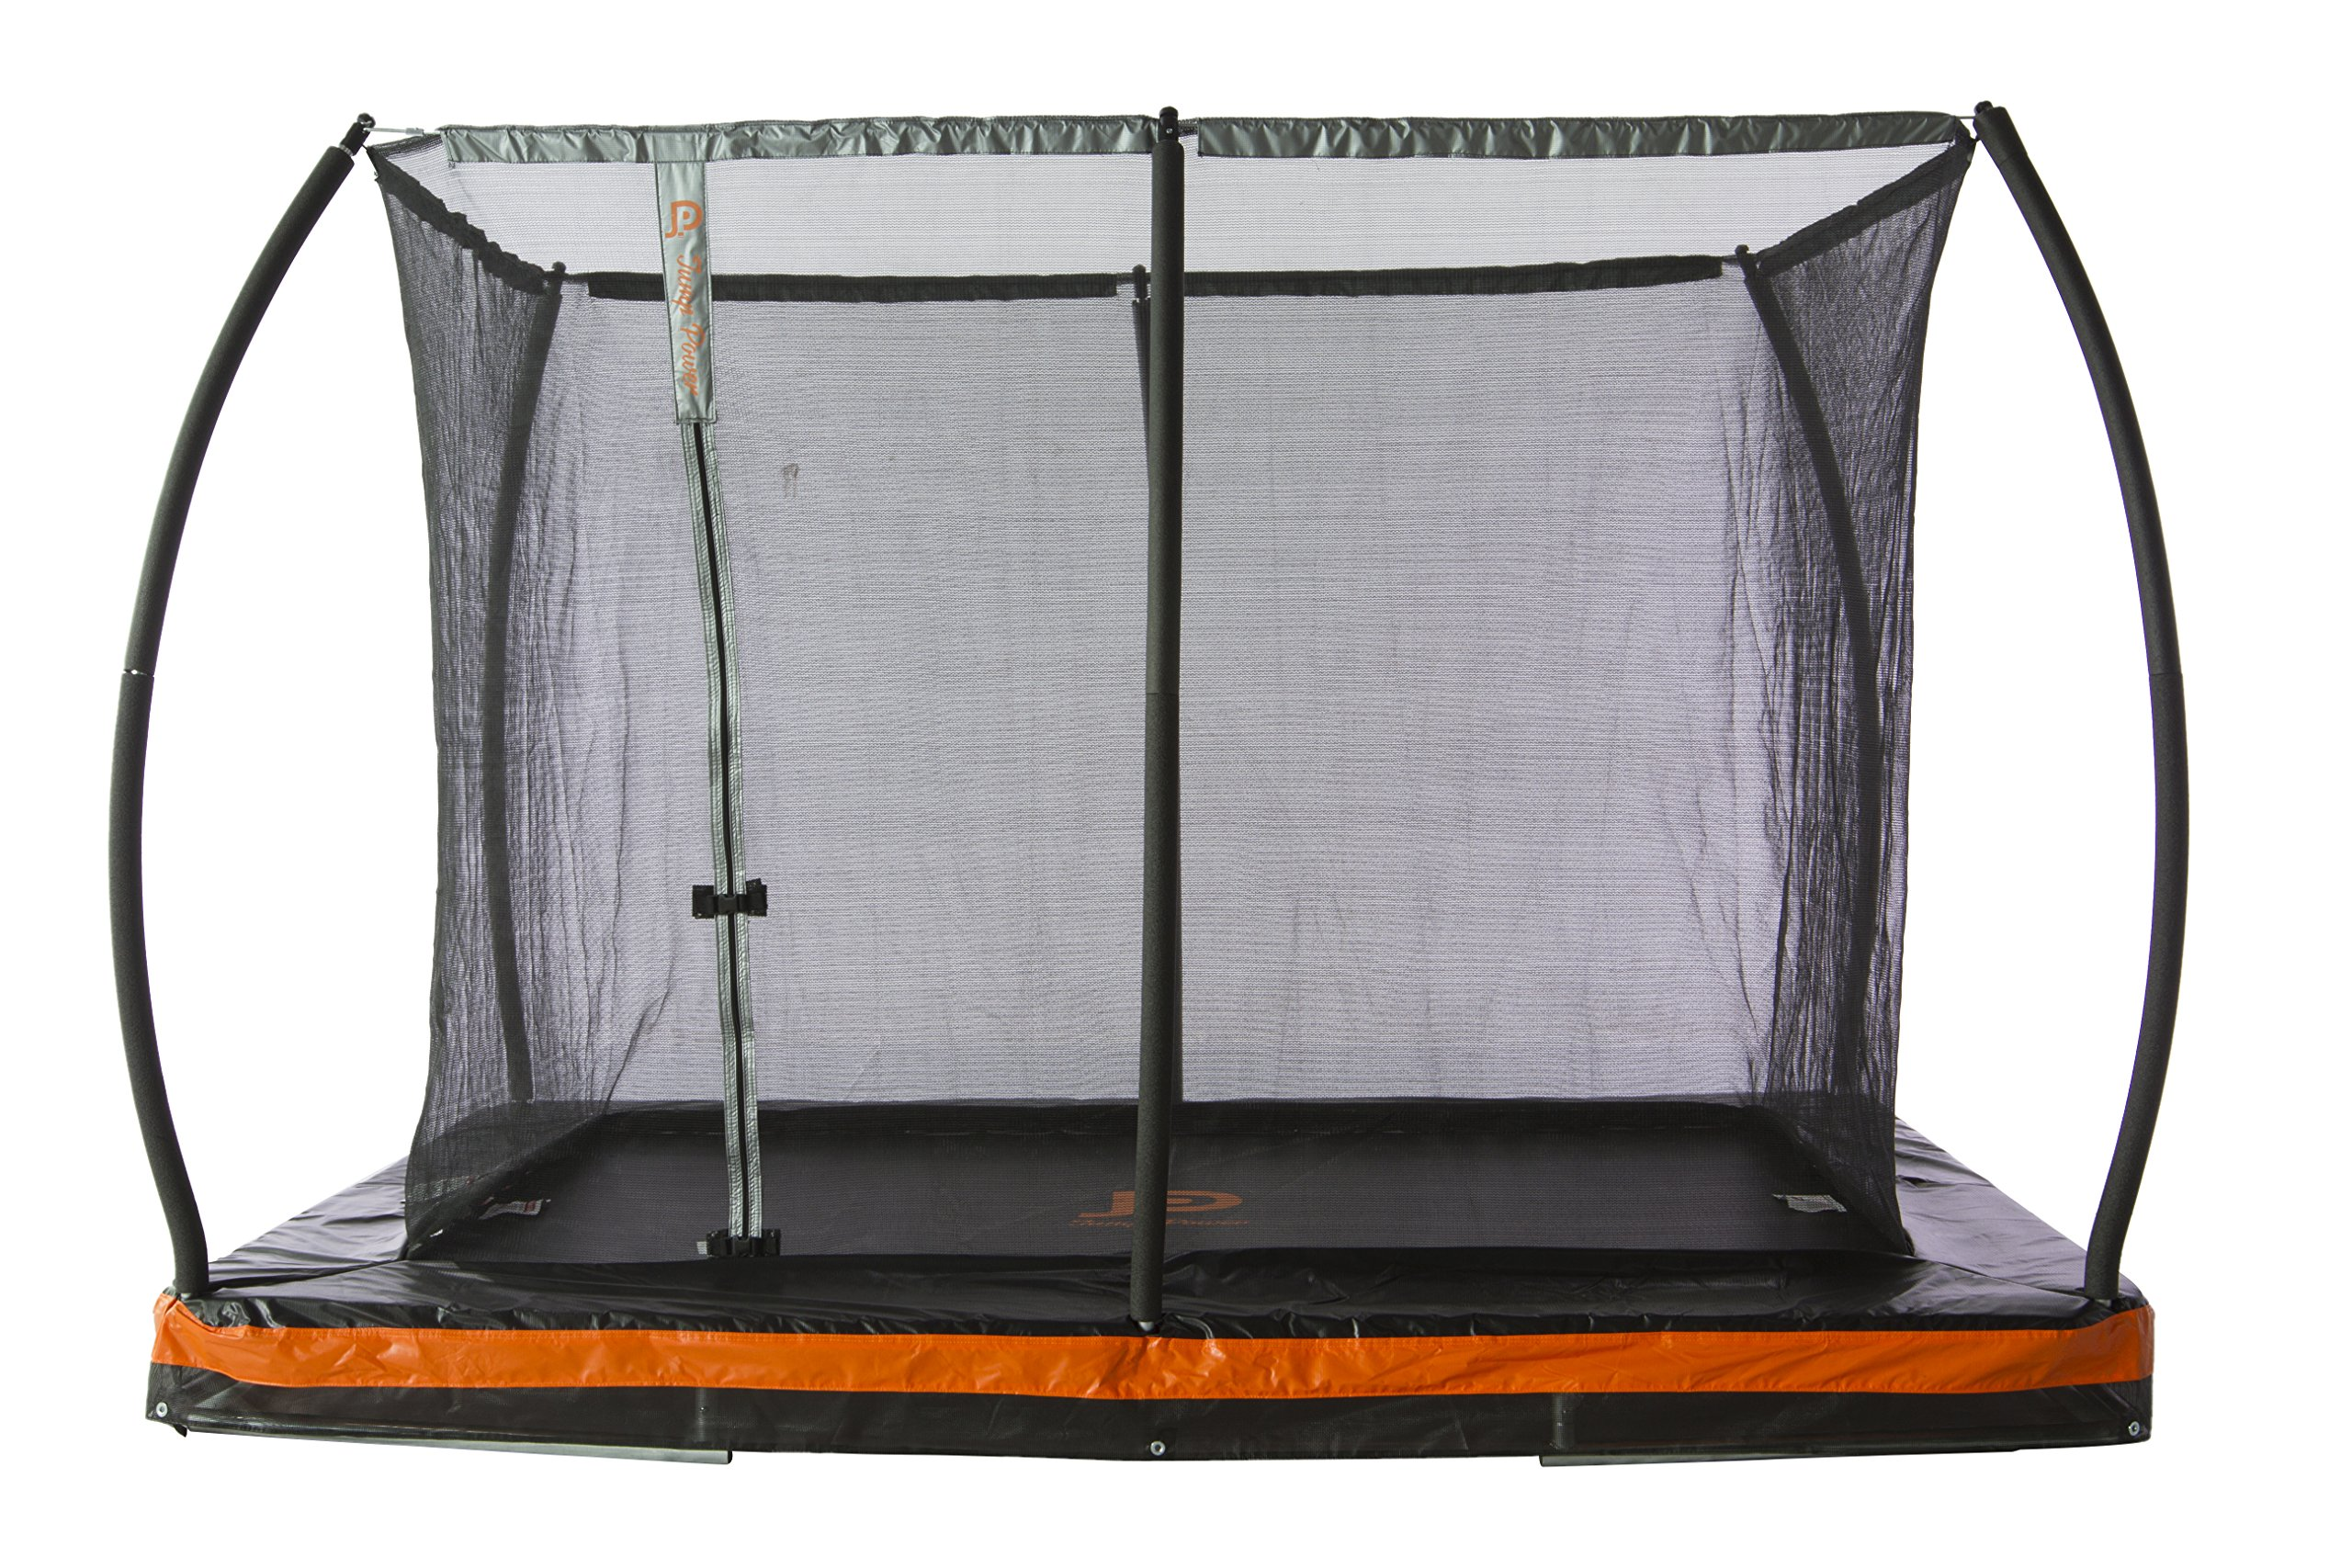 10ft. x 7.5ft. In-ground Rectangular Trampoline with Patented Safety Net Cable Wire Enclosure System - European Design by JUMP POWER